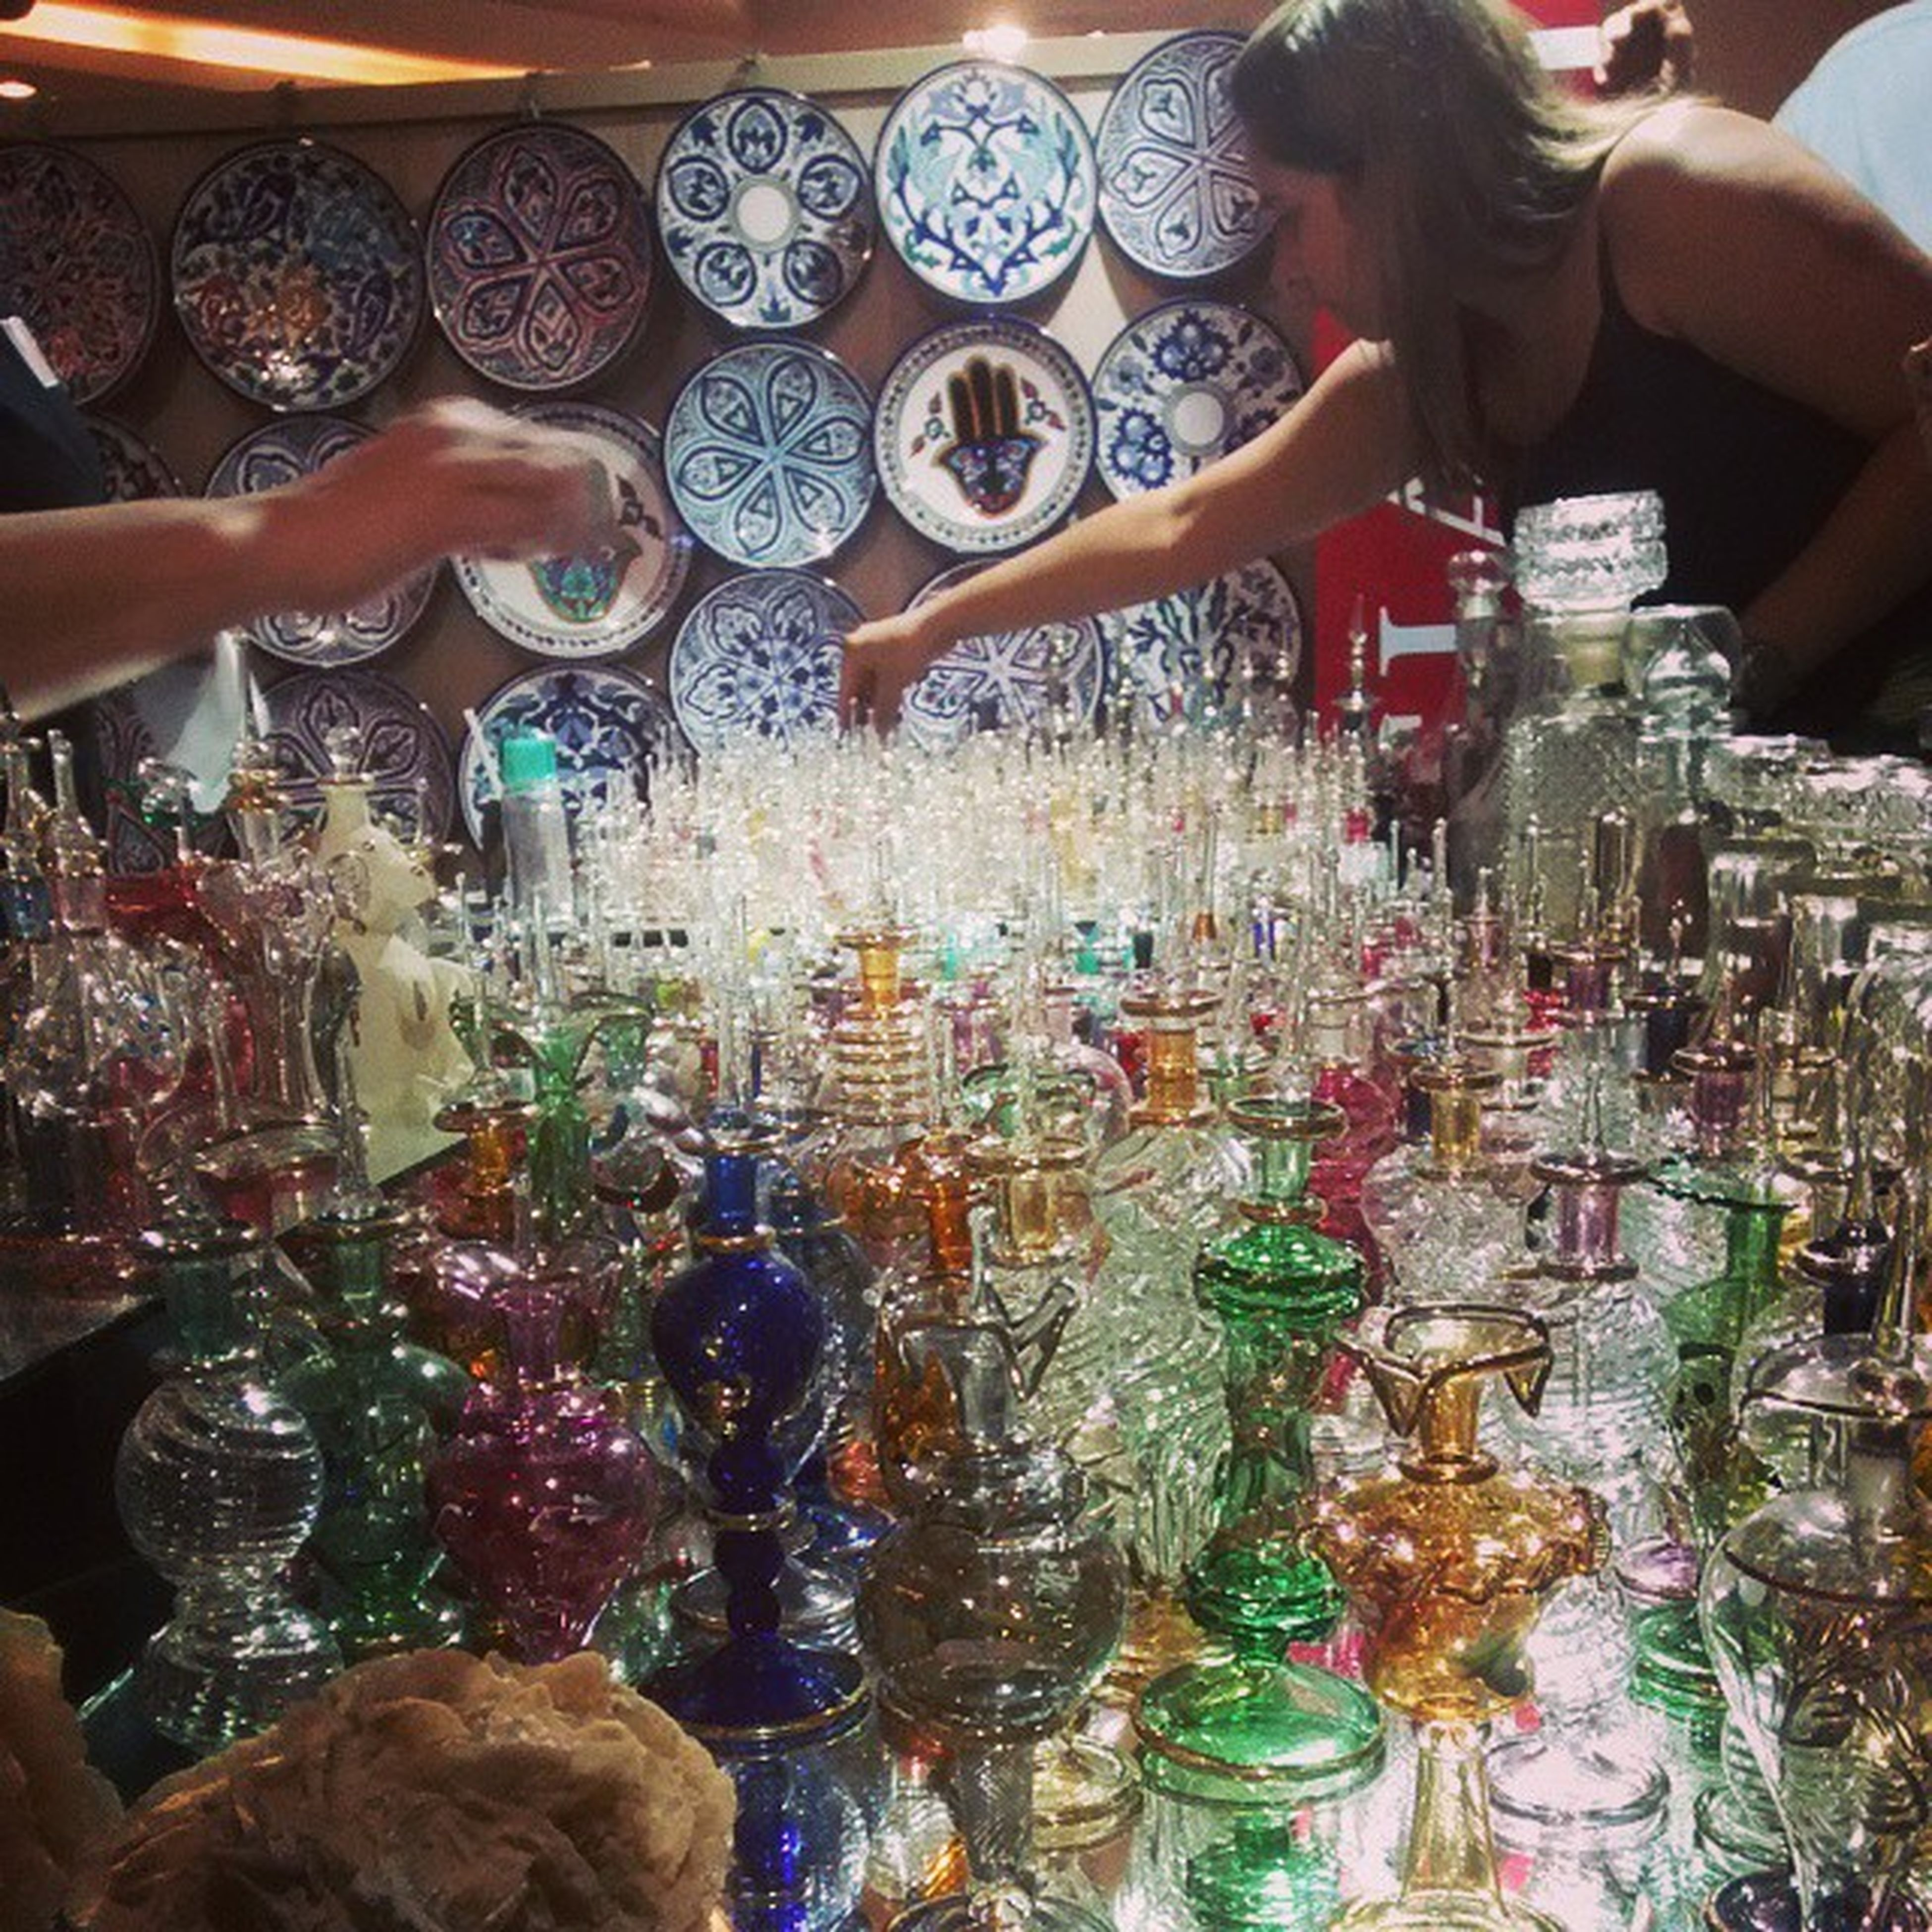 indoors, lifestyles, person, leisure activity, celebration, high angle view, large group of objects, variation, choice, abundance, tradition, cultures, retail, men, for sale, multi colored